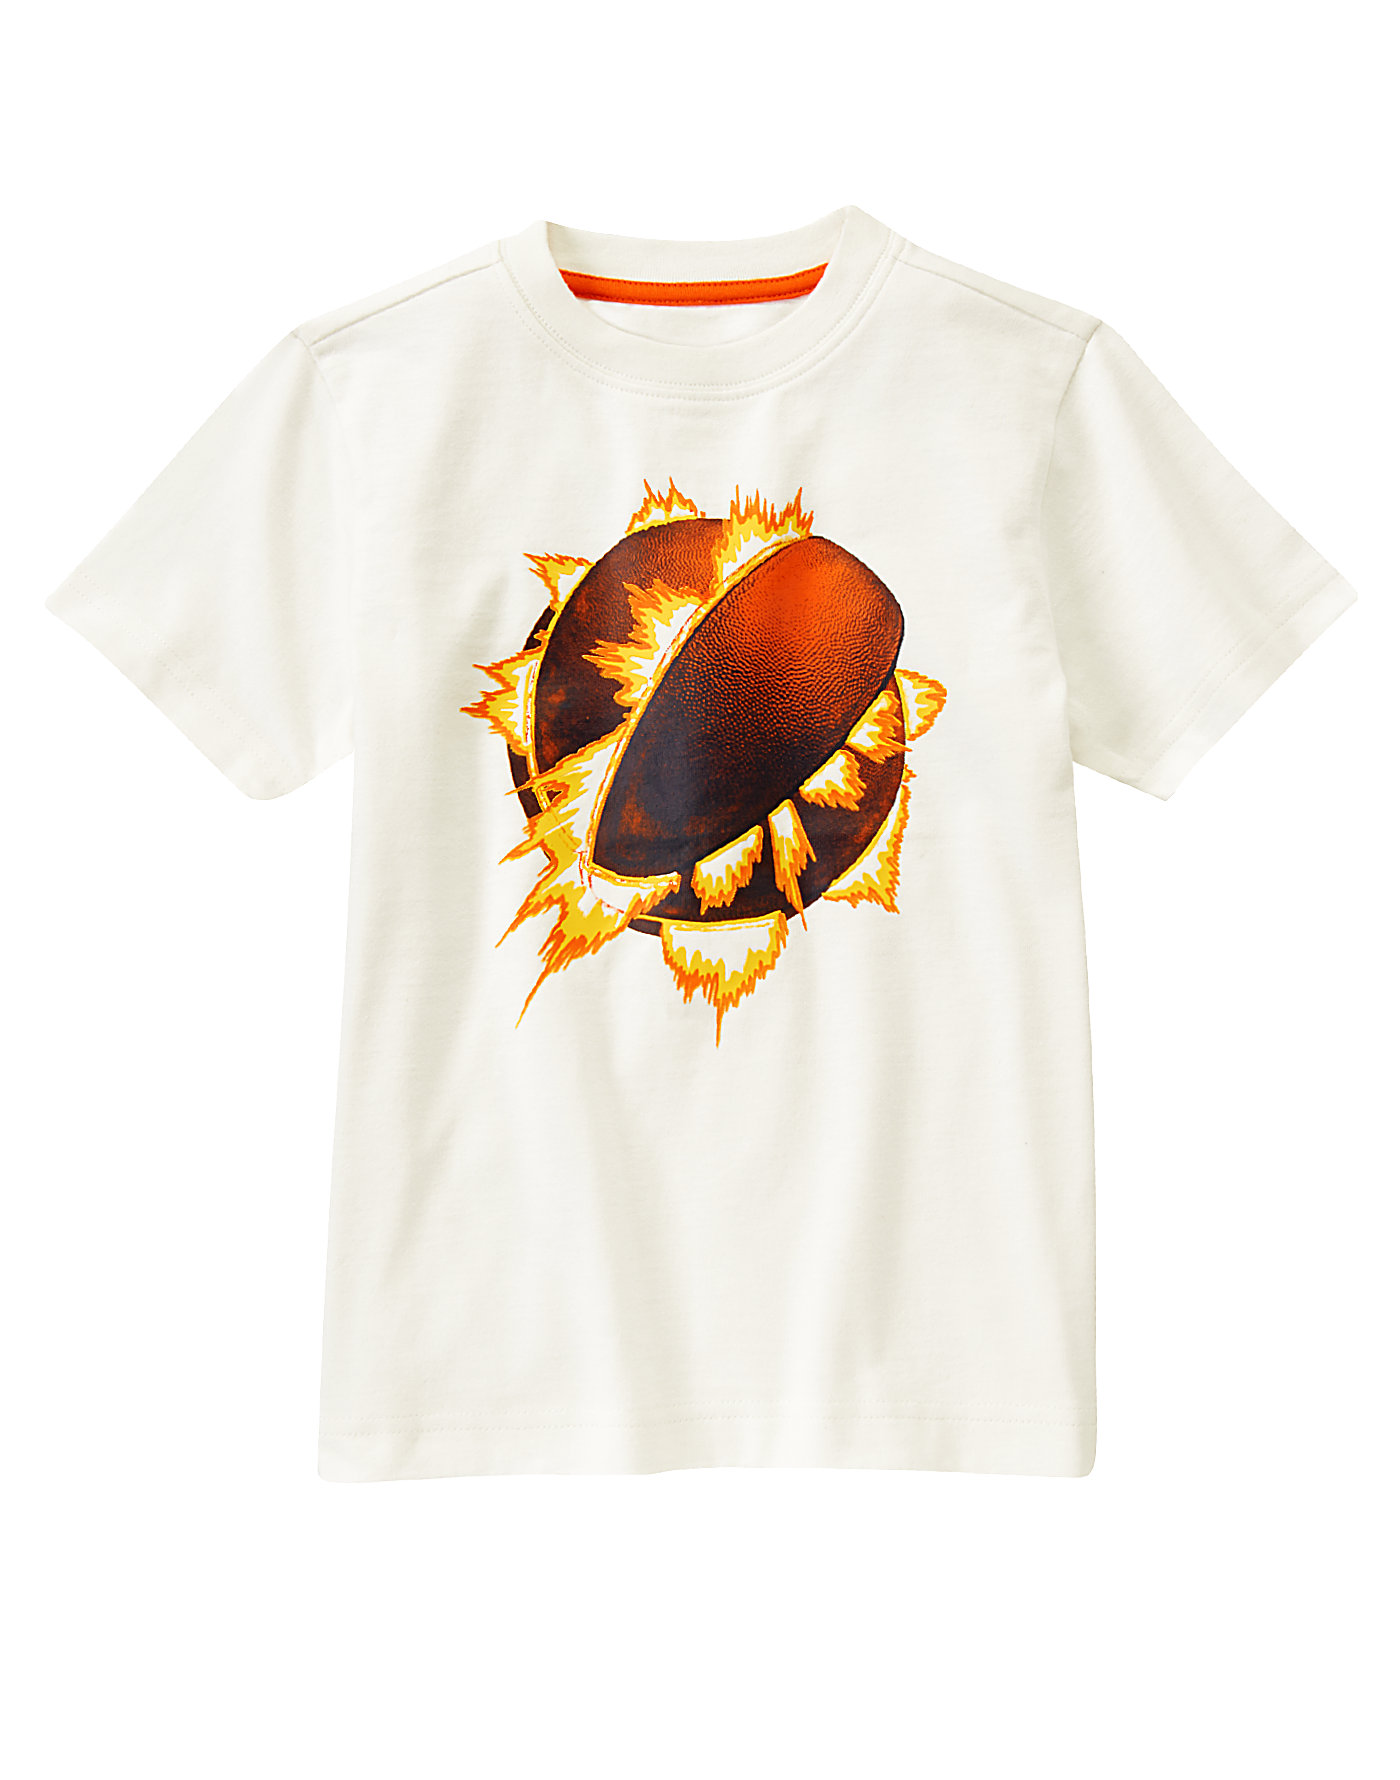 Basketball shirts at Gymboree - enter to win at savingsinseconds.com